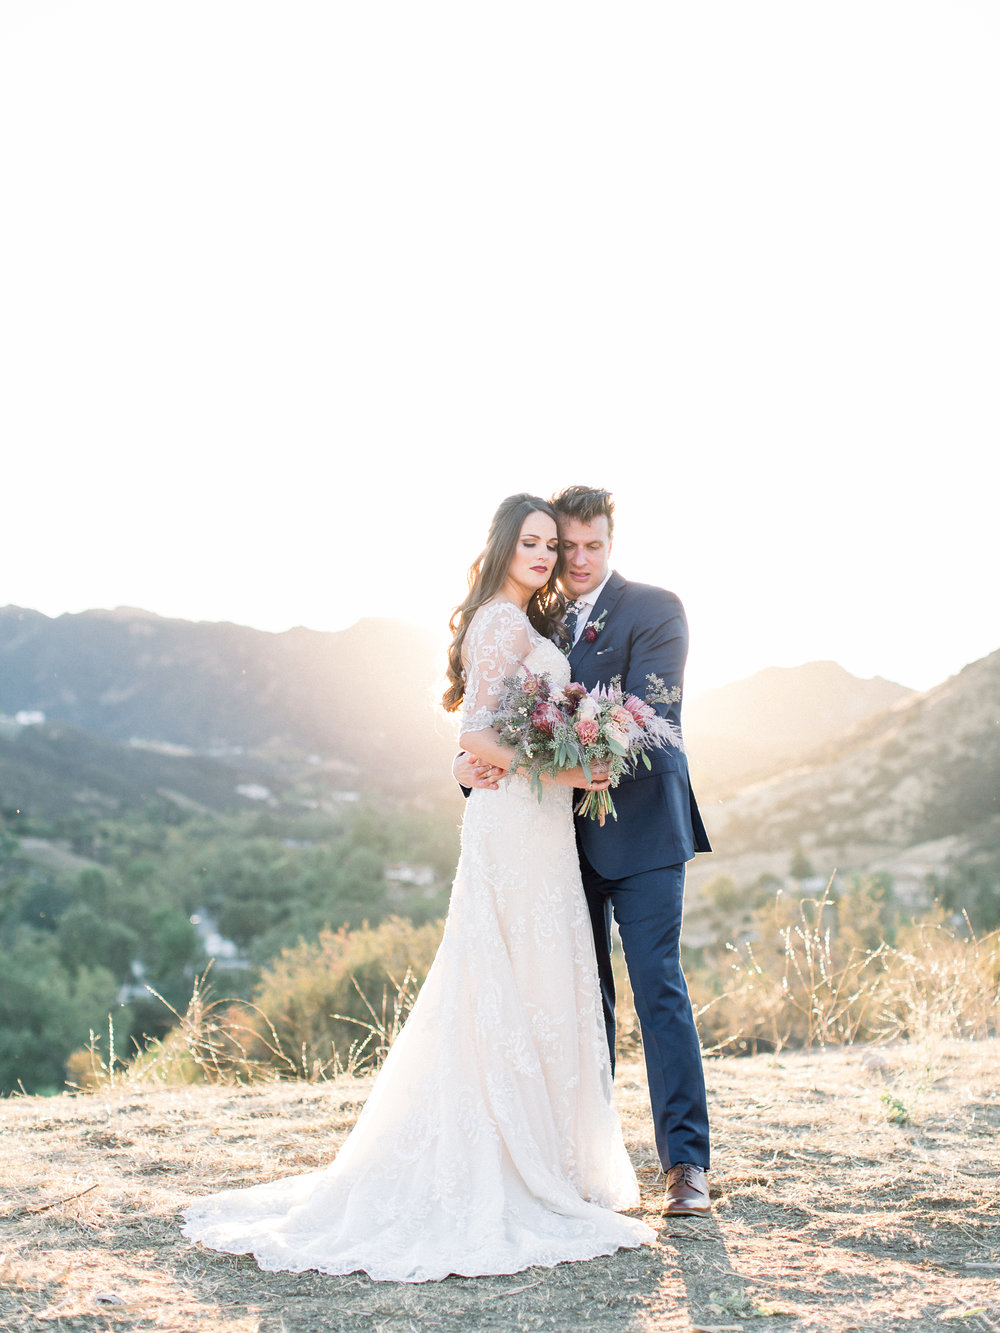 brookview ranch sunset wedding.JPG